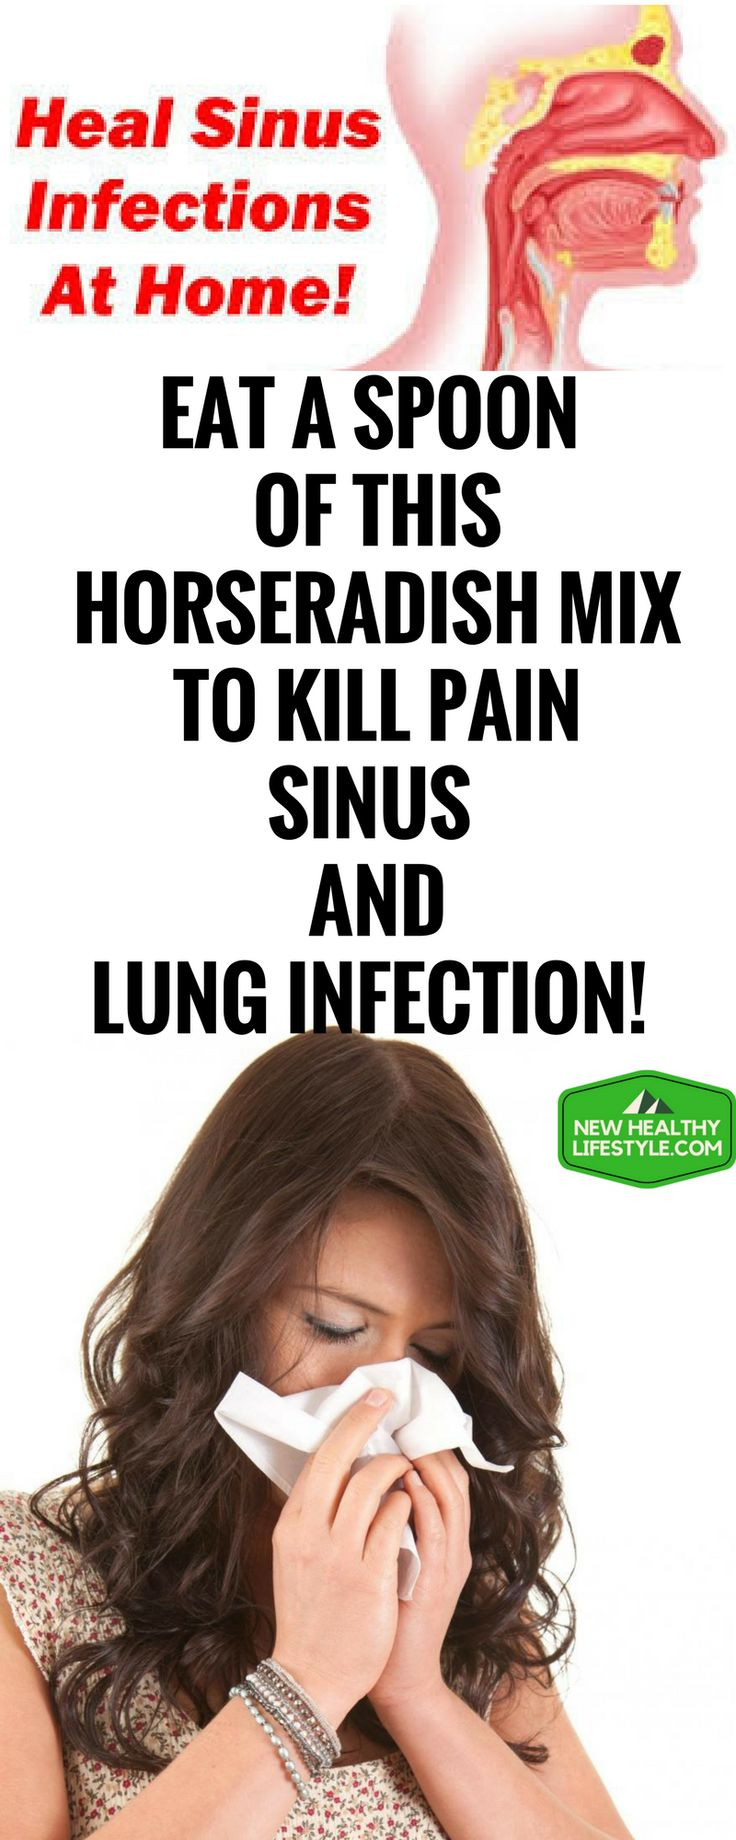 EAT A SPOON OF THIS HORSERADISH MIX TO KILL PAIN, SINUS AND LUNG INFECTION!,.,.